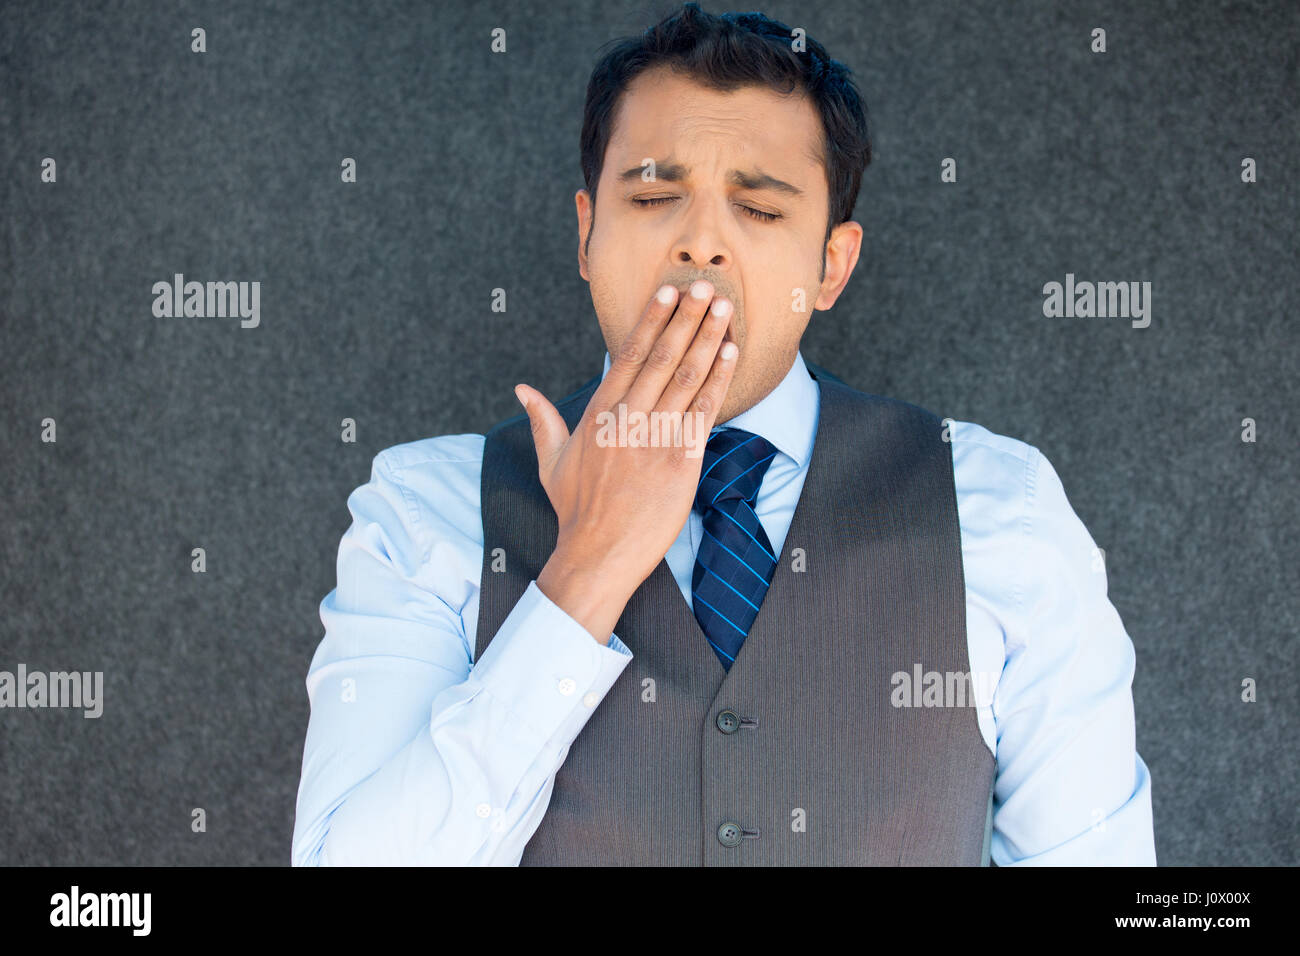 Closeup portrait of handsome young tired fatigued boss manager man placing hand on mouth yawning, eyes closed, isolated - Stock Image